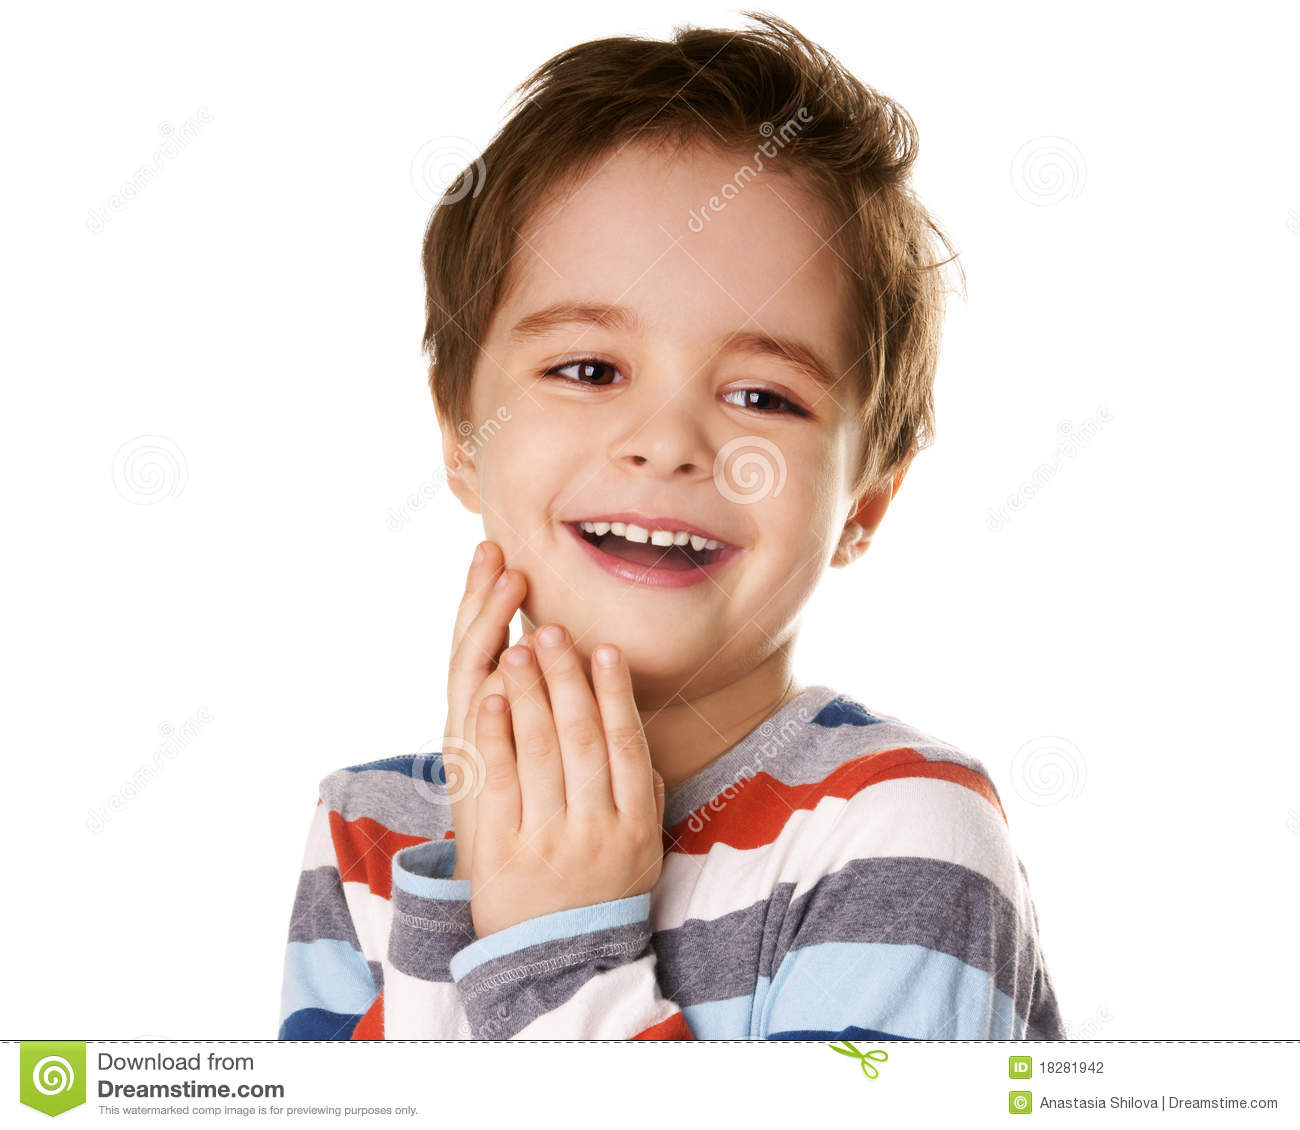 Http Dreamstime Com Stock Photography Happy Kid Image18281942